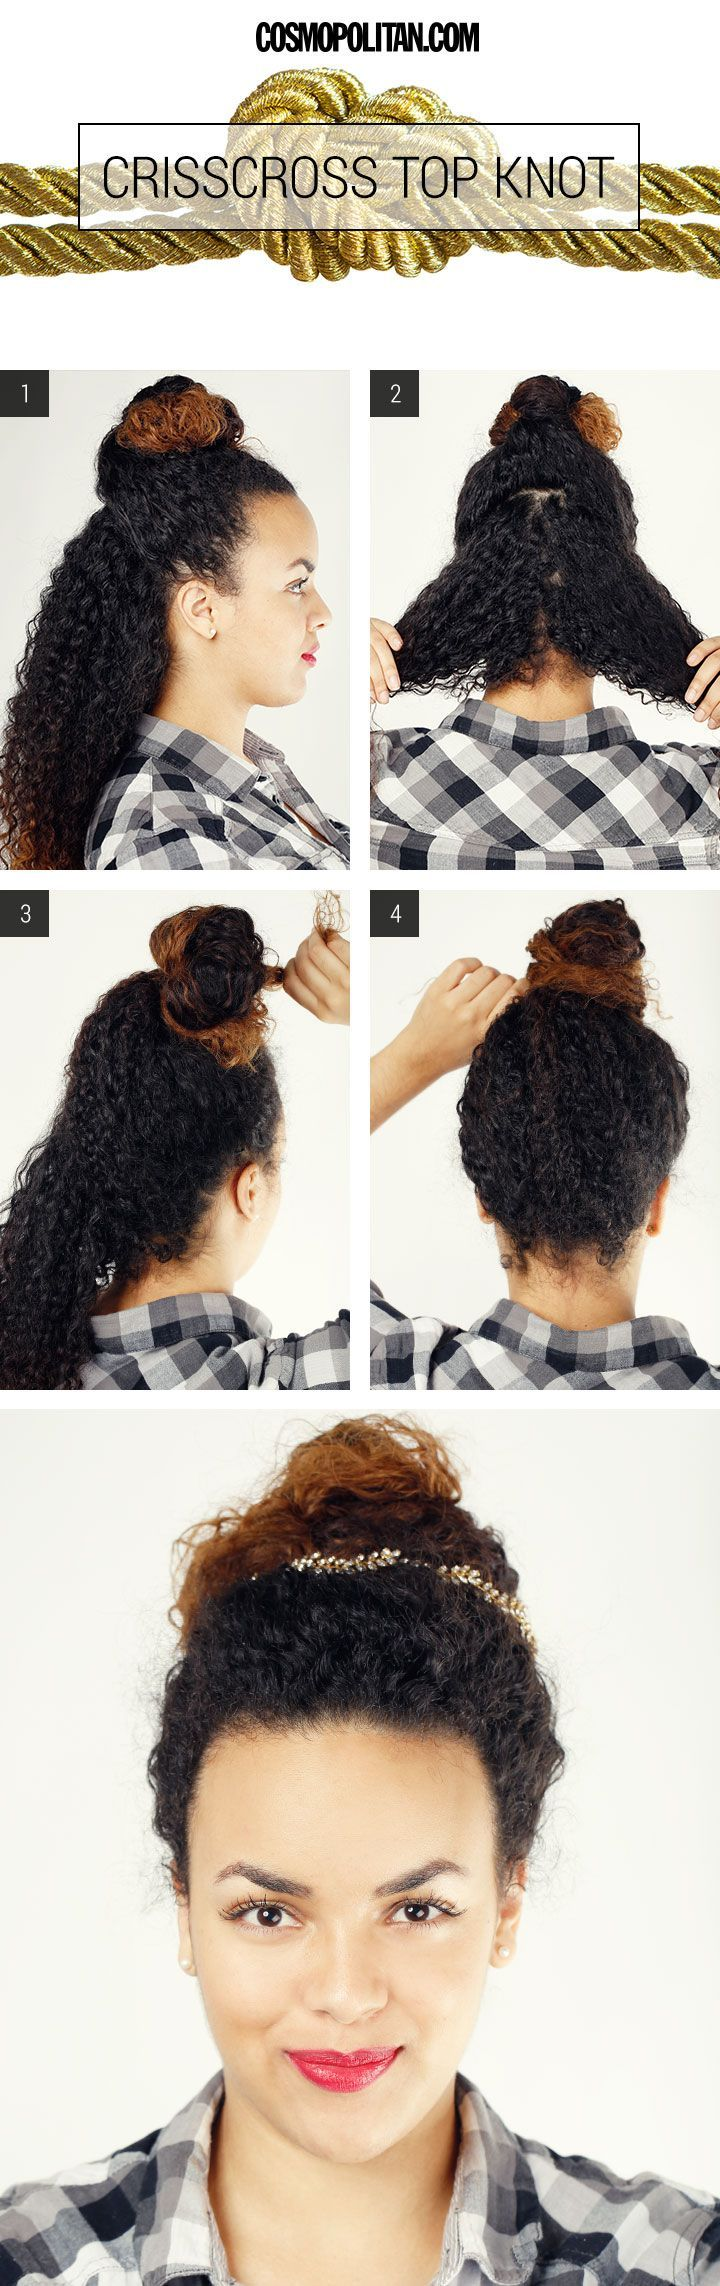 super easy hair looks every woman can do in minutes easy hair